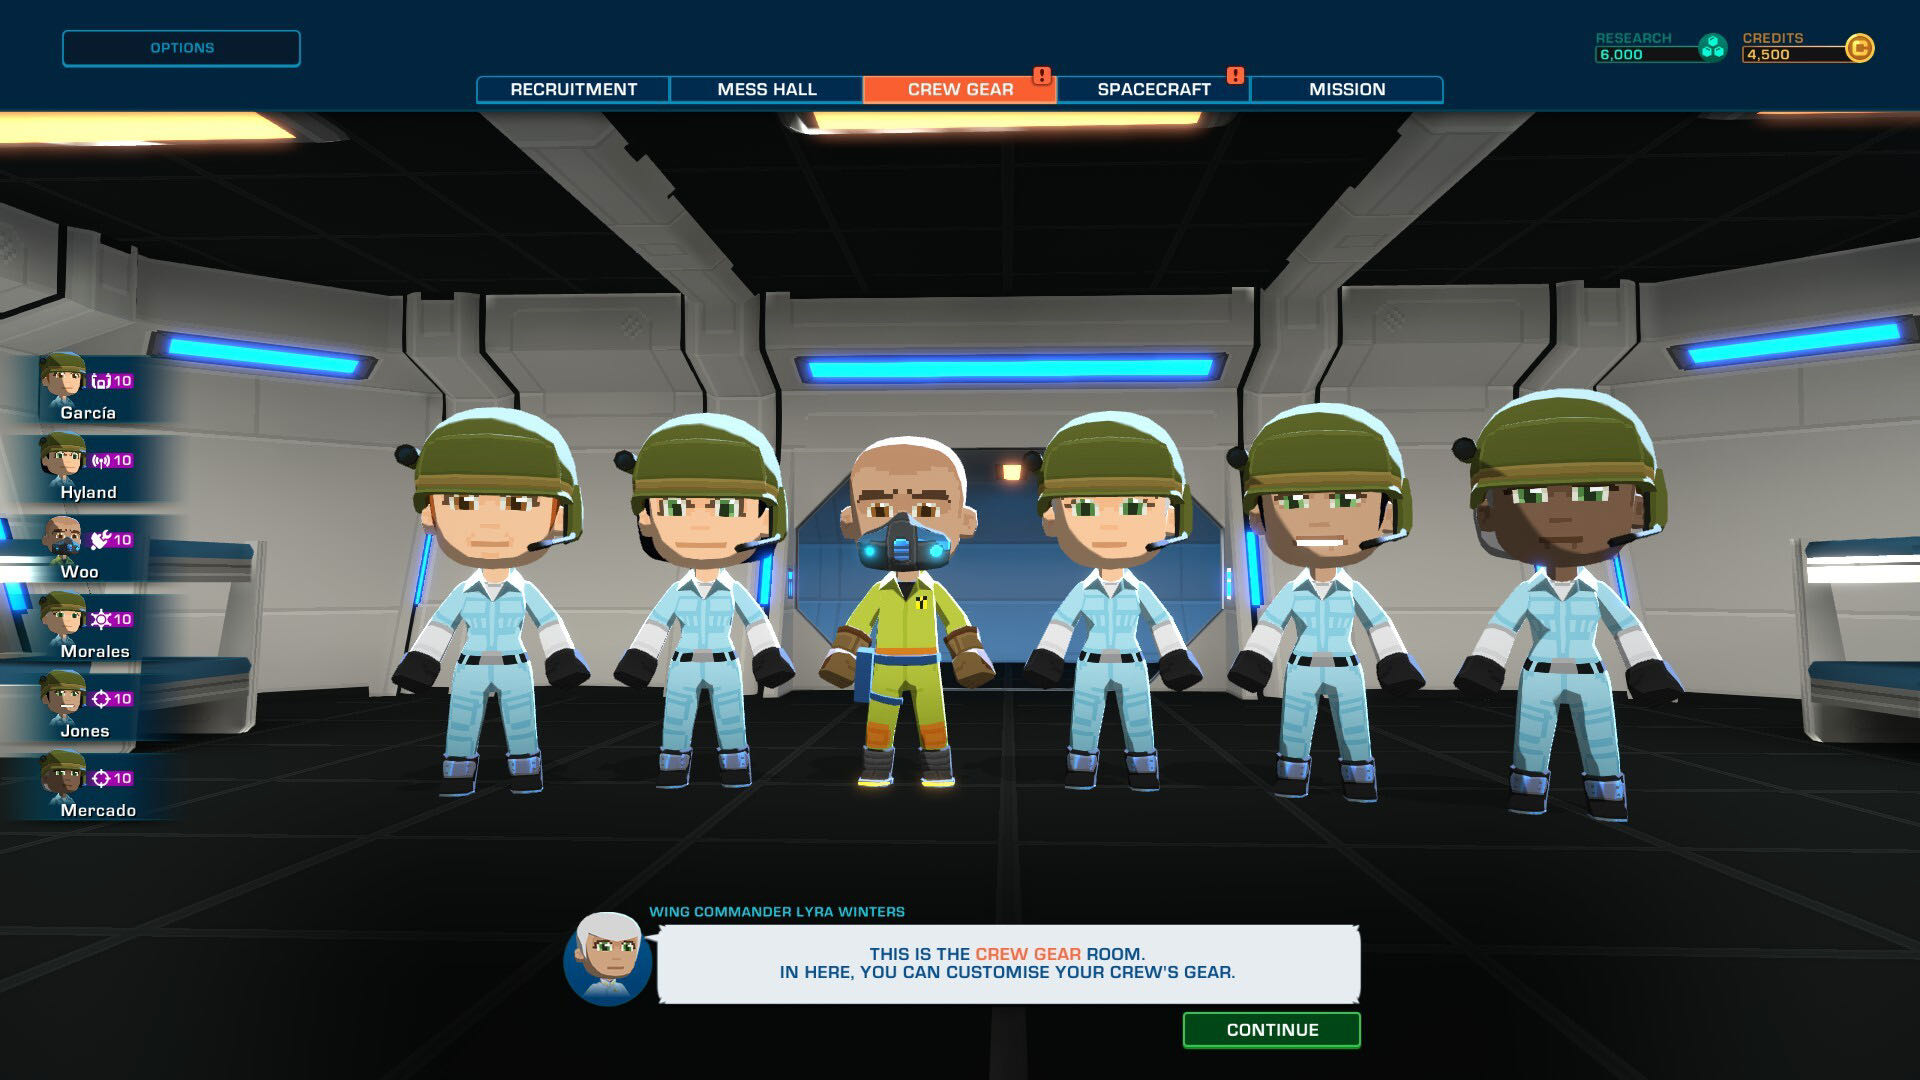 A screenshot from Space Crew, showing your 6-person crew lined up in the gear room.